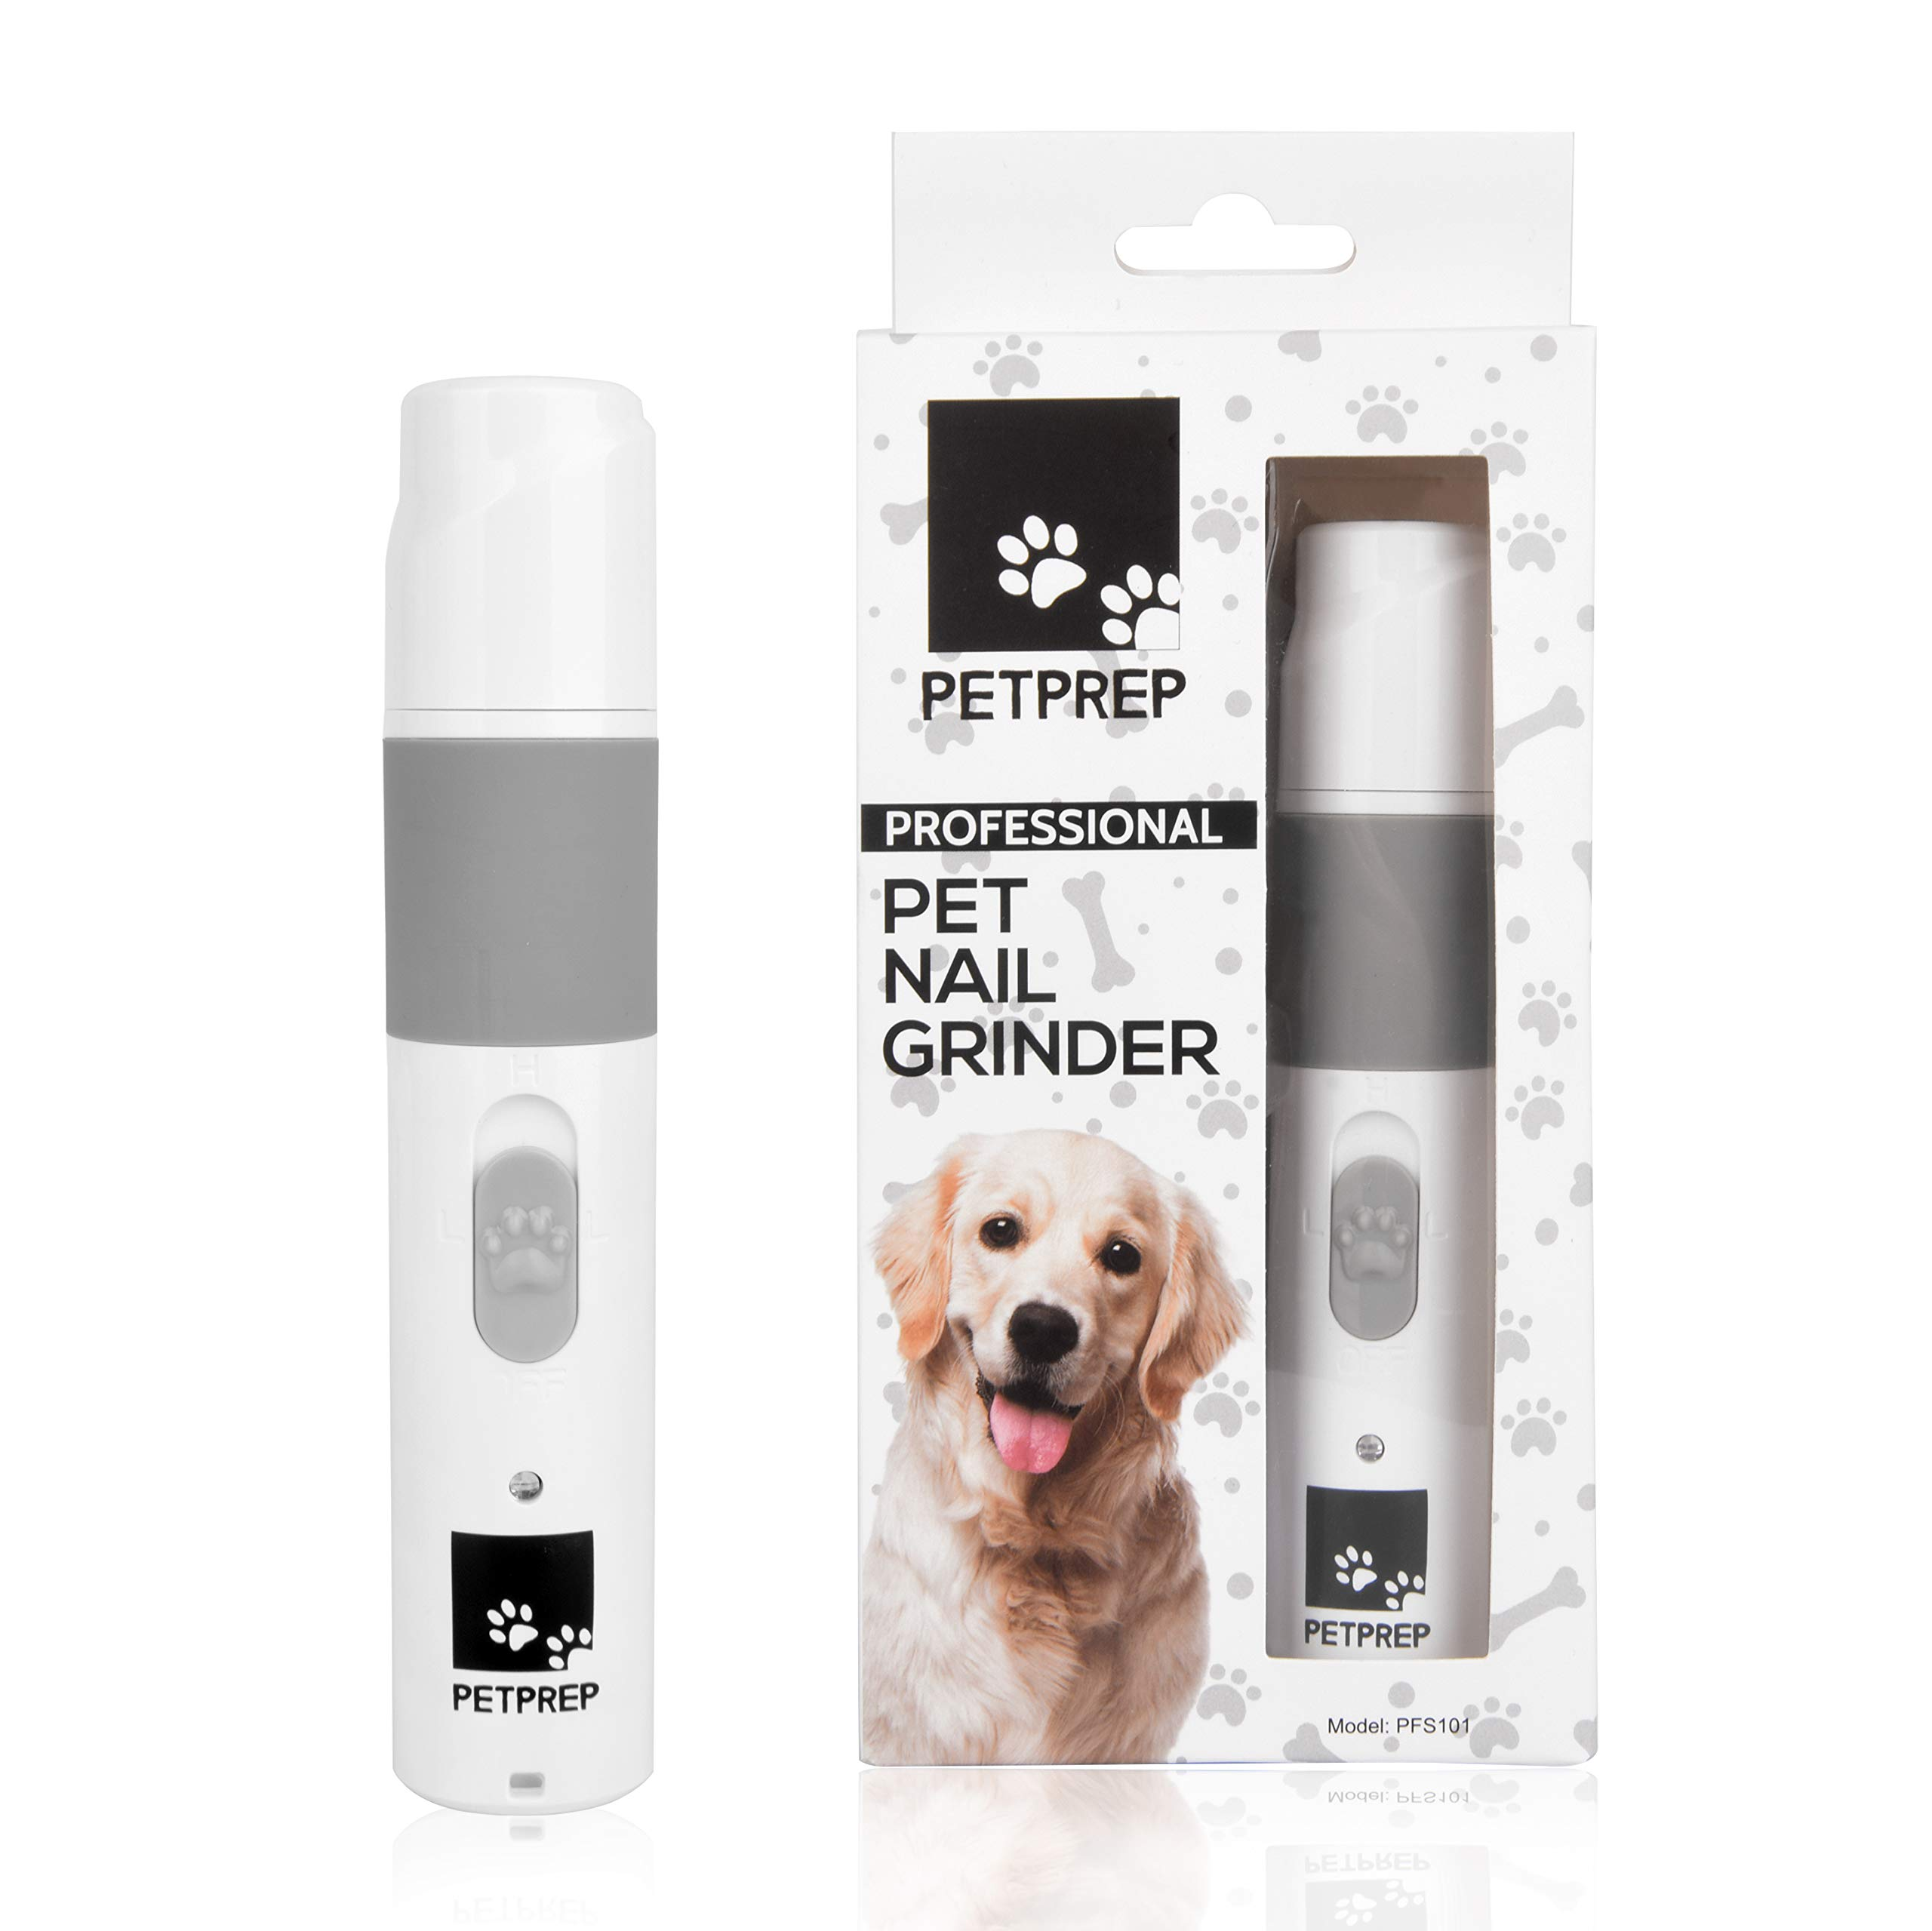 Pet Prep Cordless Pet Nail Grinder for Gentle & Painless Nail Grooming, Trimming, Shaping, Grinding and Smoothing for Dogs, Cats, Rabbits, Birds & Small Animals, Portable & Rechargeable